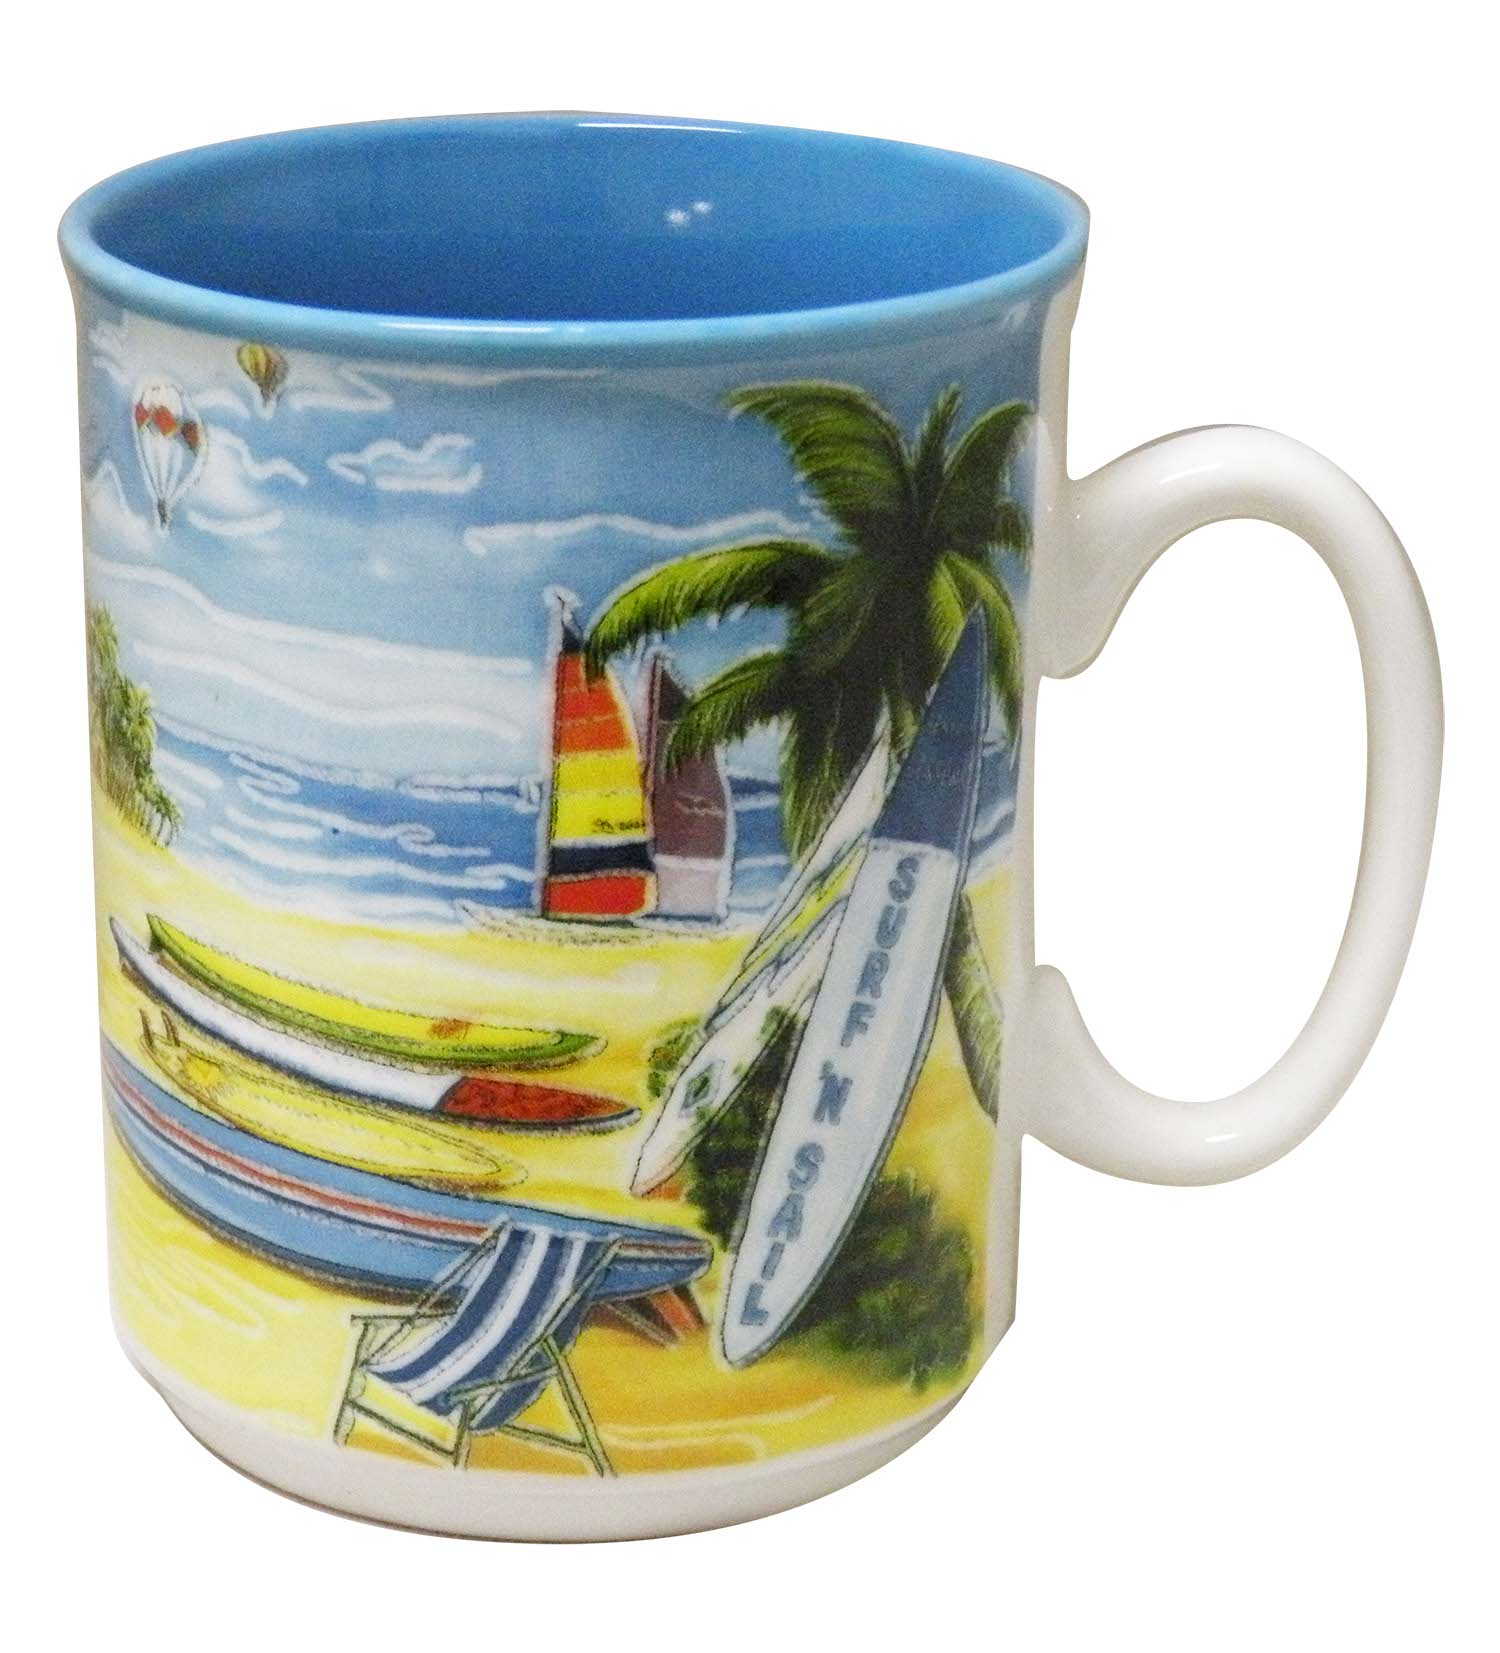 MUG CERAMIC/BLUE-SURFB/SLBT * UOM: PC * Minimum Order:4